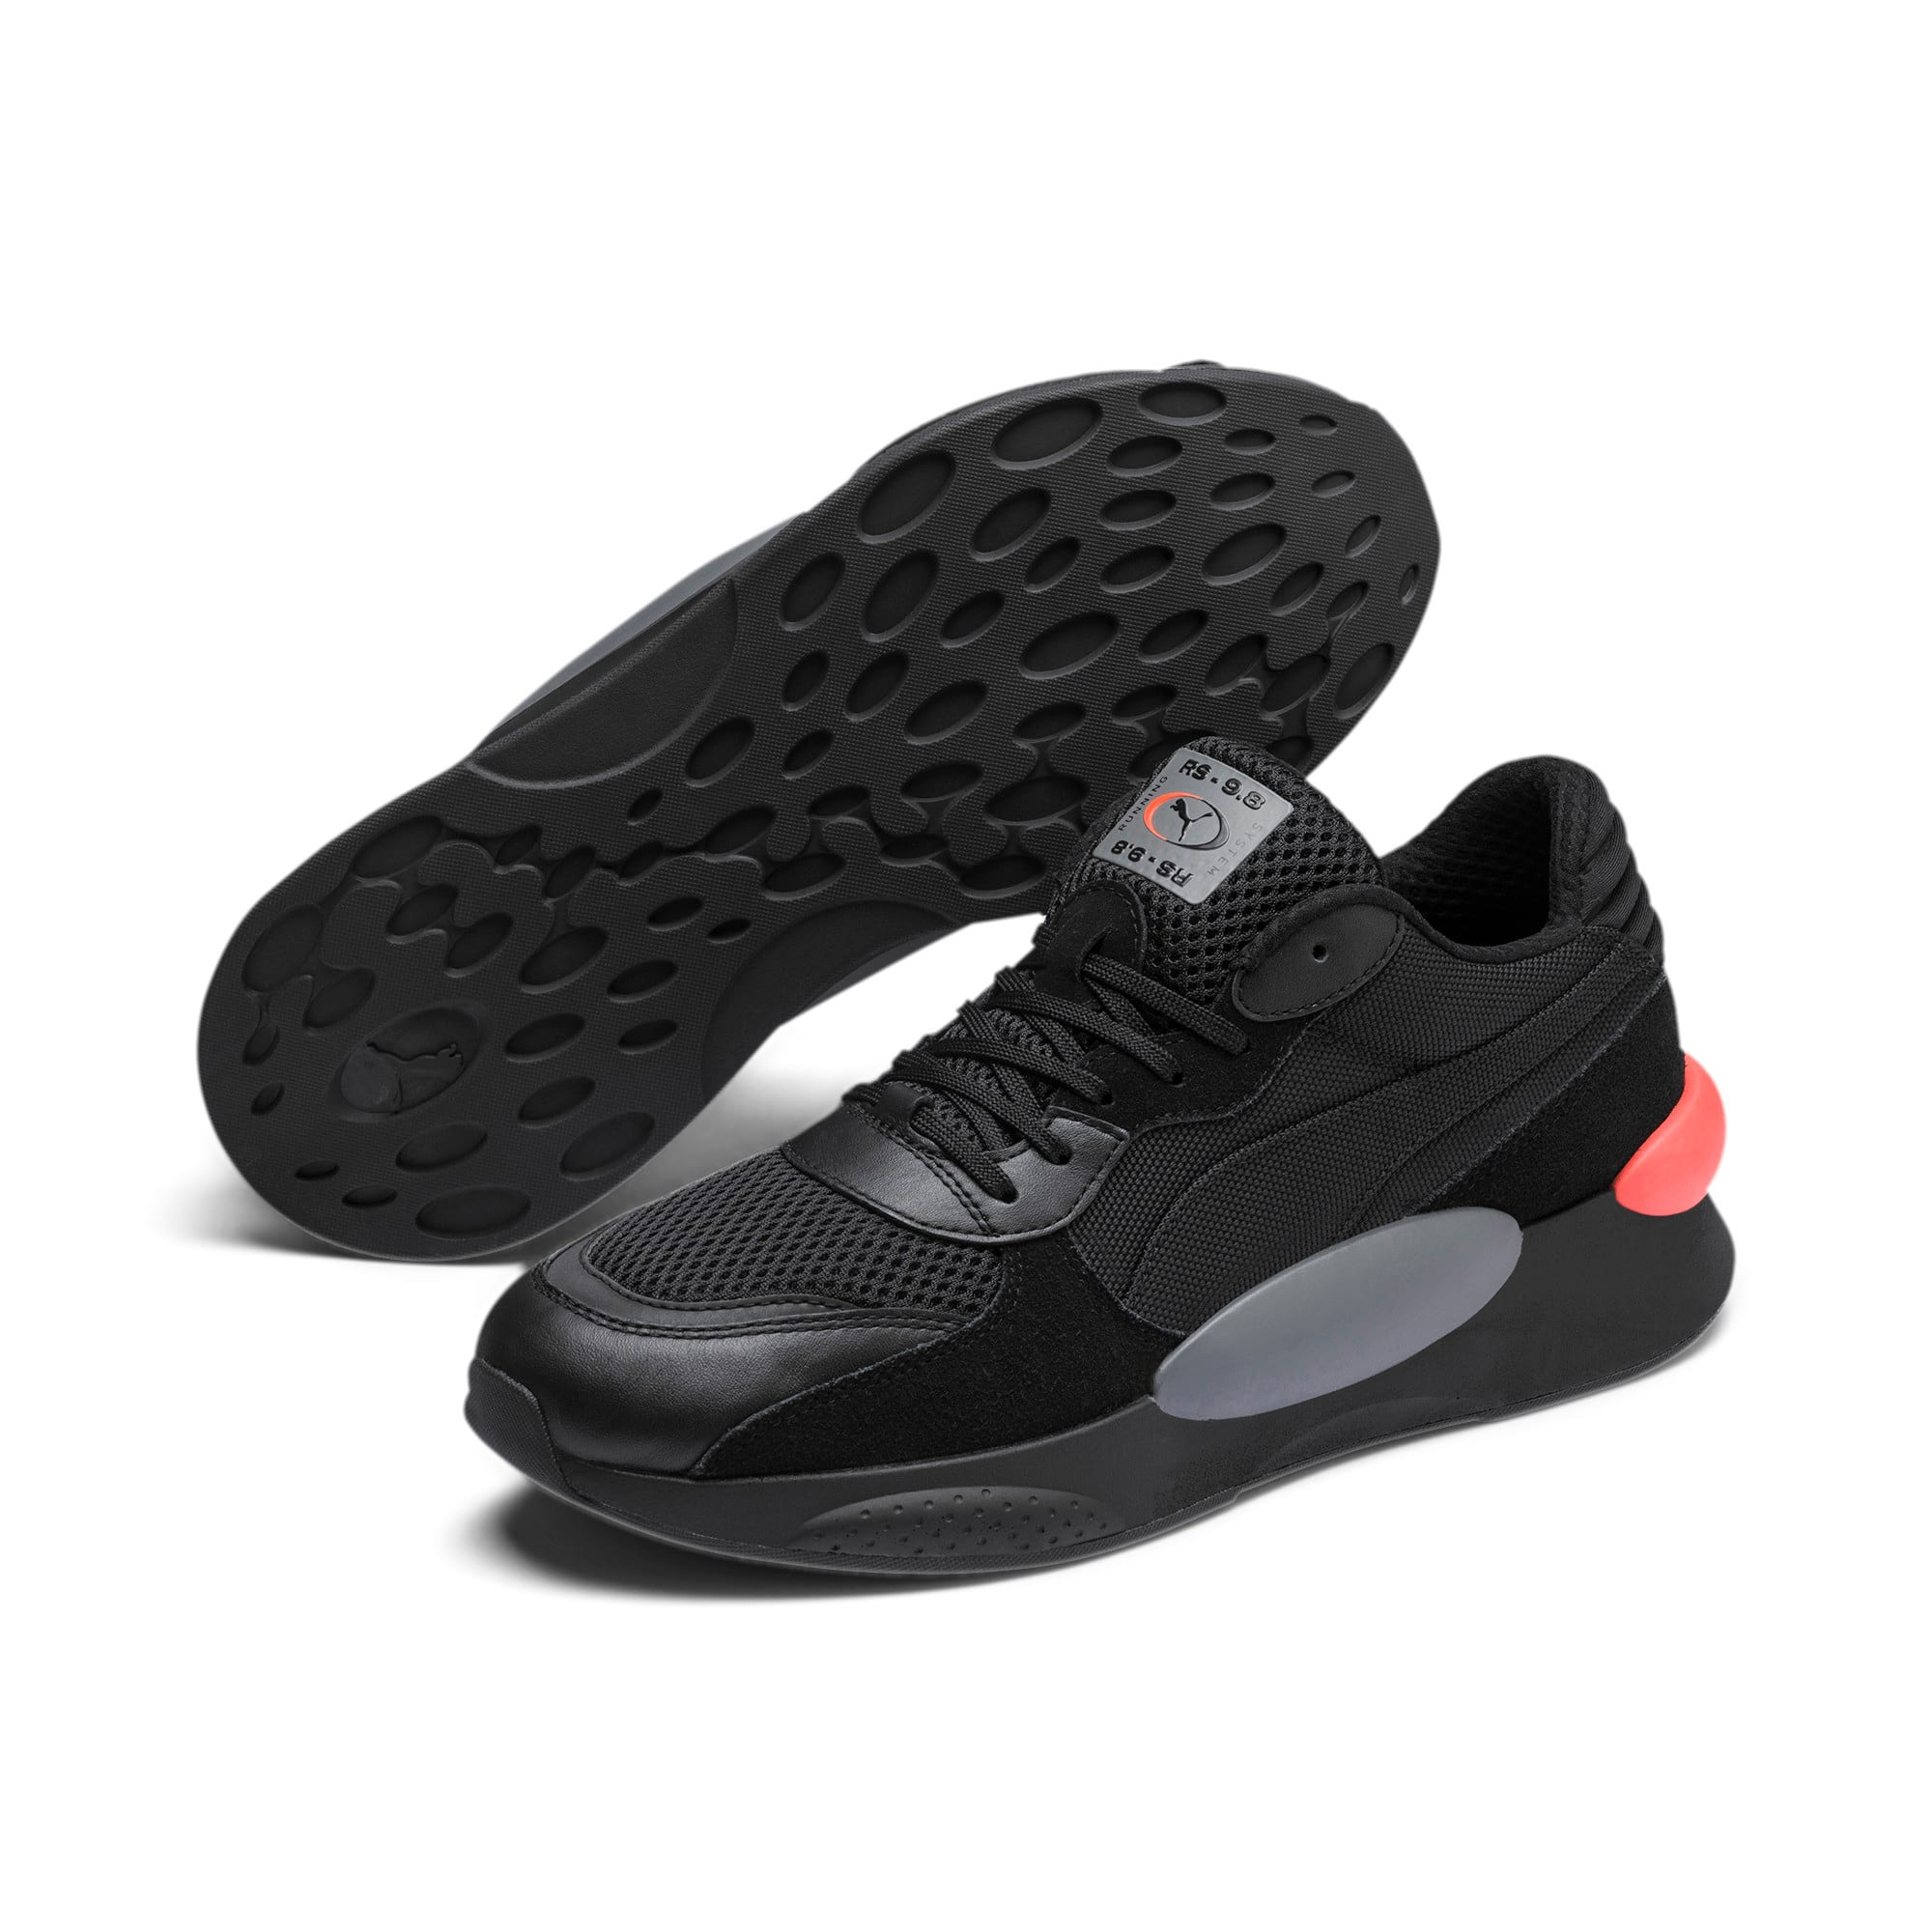 Thumbnail 2 of RS 9.8 Cosmic Trainers, Puma Black, medium